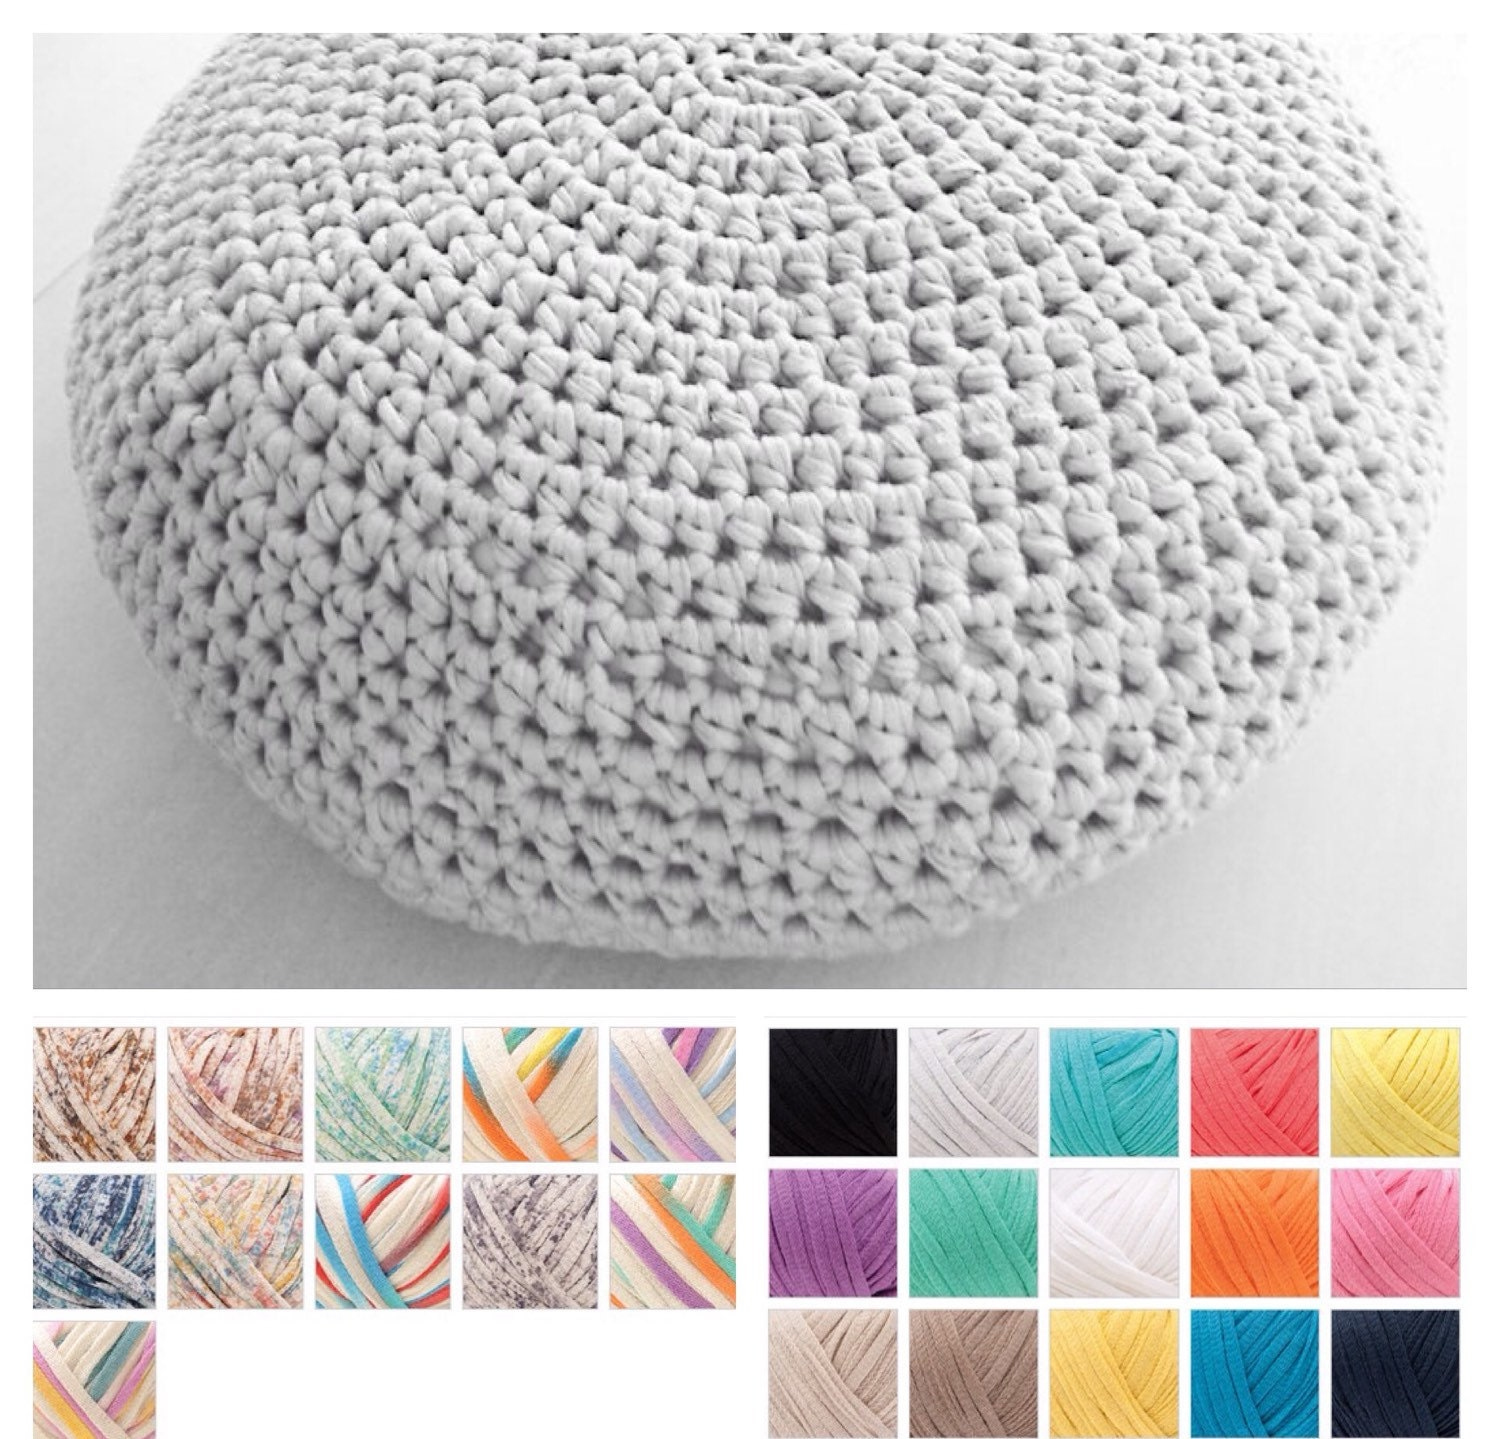 xxl crochet pouf ottoman floor cushion pdf pattern instant download from annemariesbreiblog on. Black Bedroom Furniture Sets. Home Design Ideas